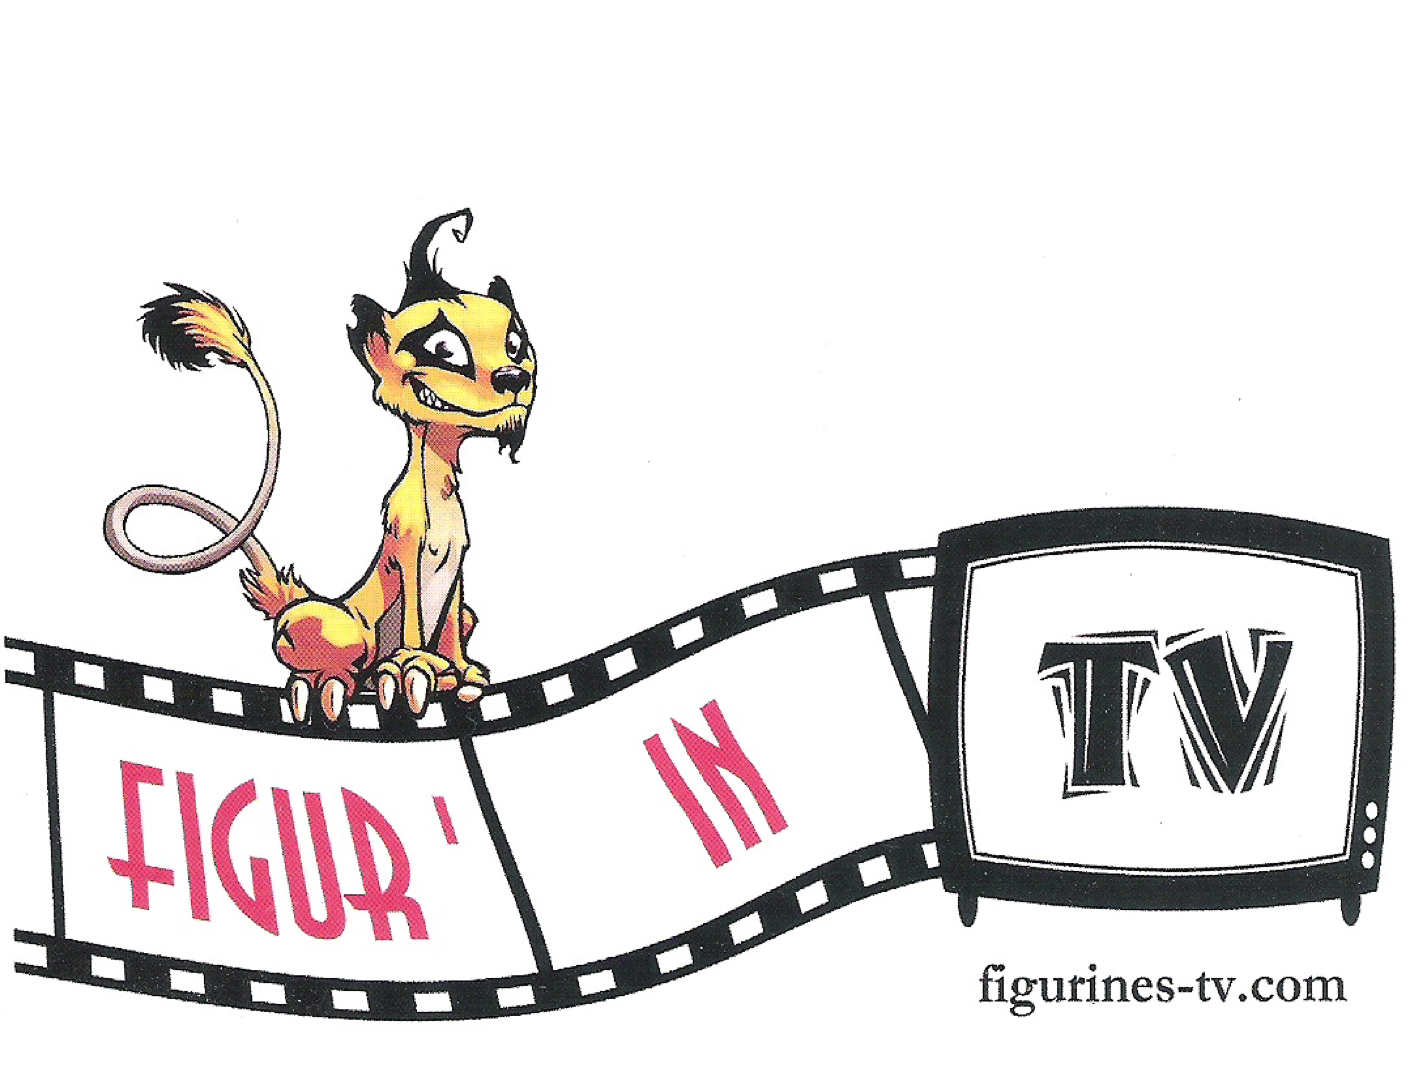 Logo Figurin TV